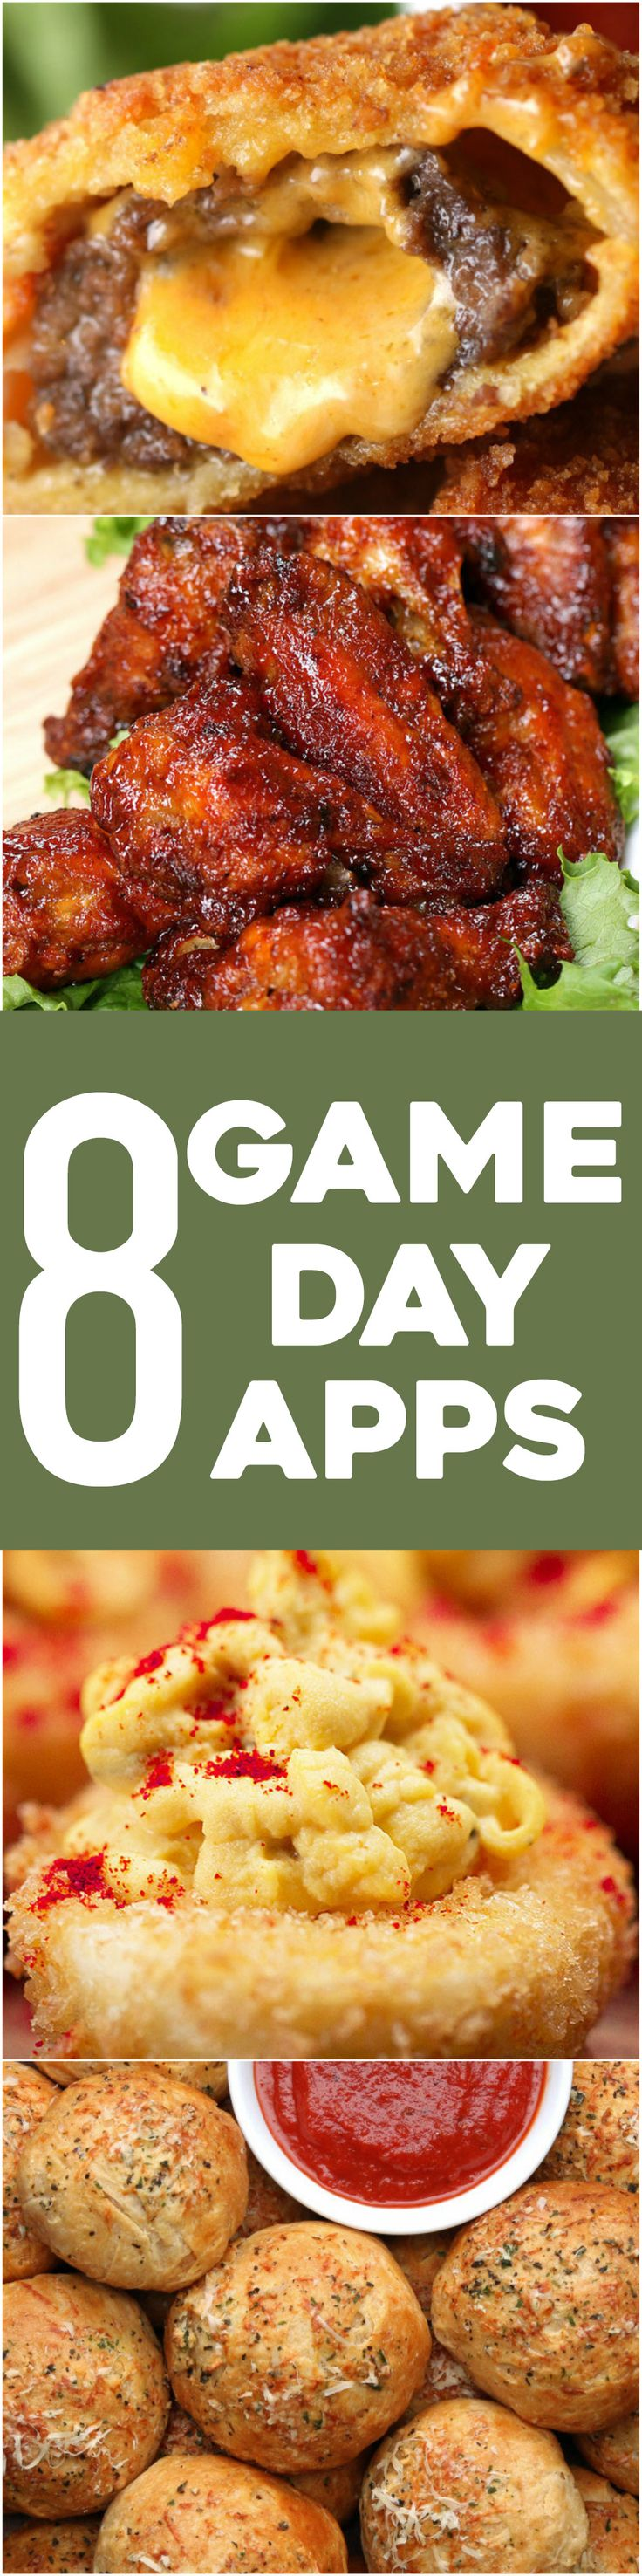 8 Game Day Apps